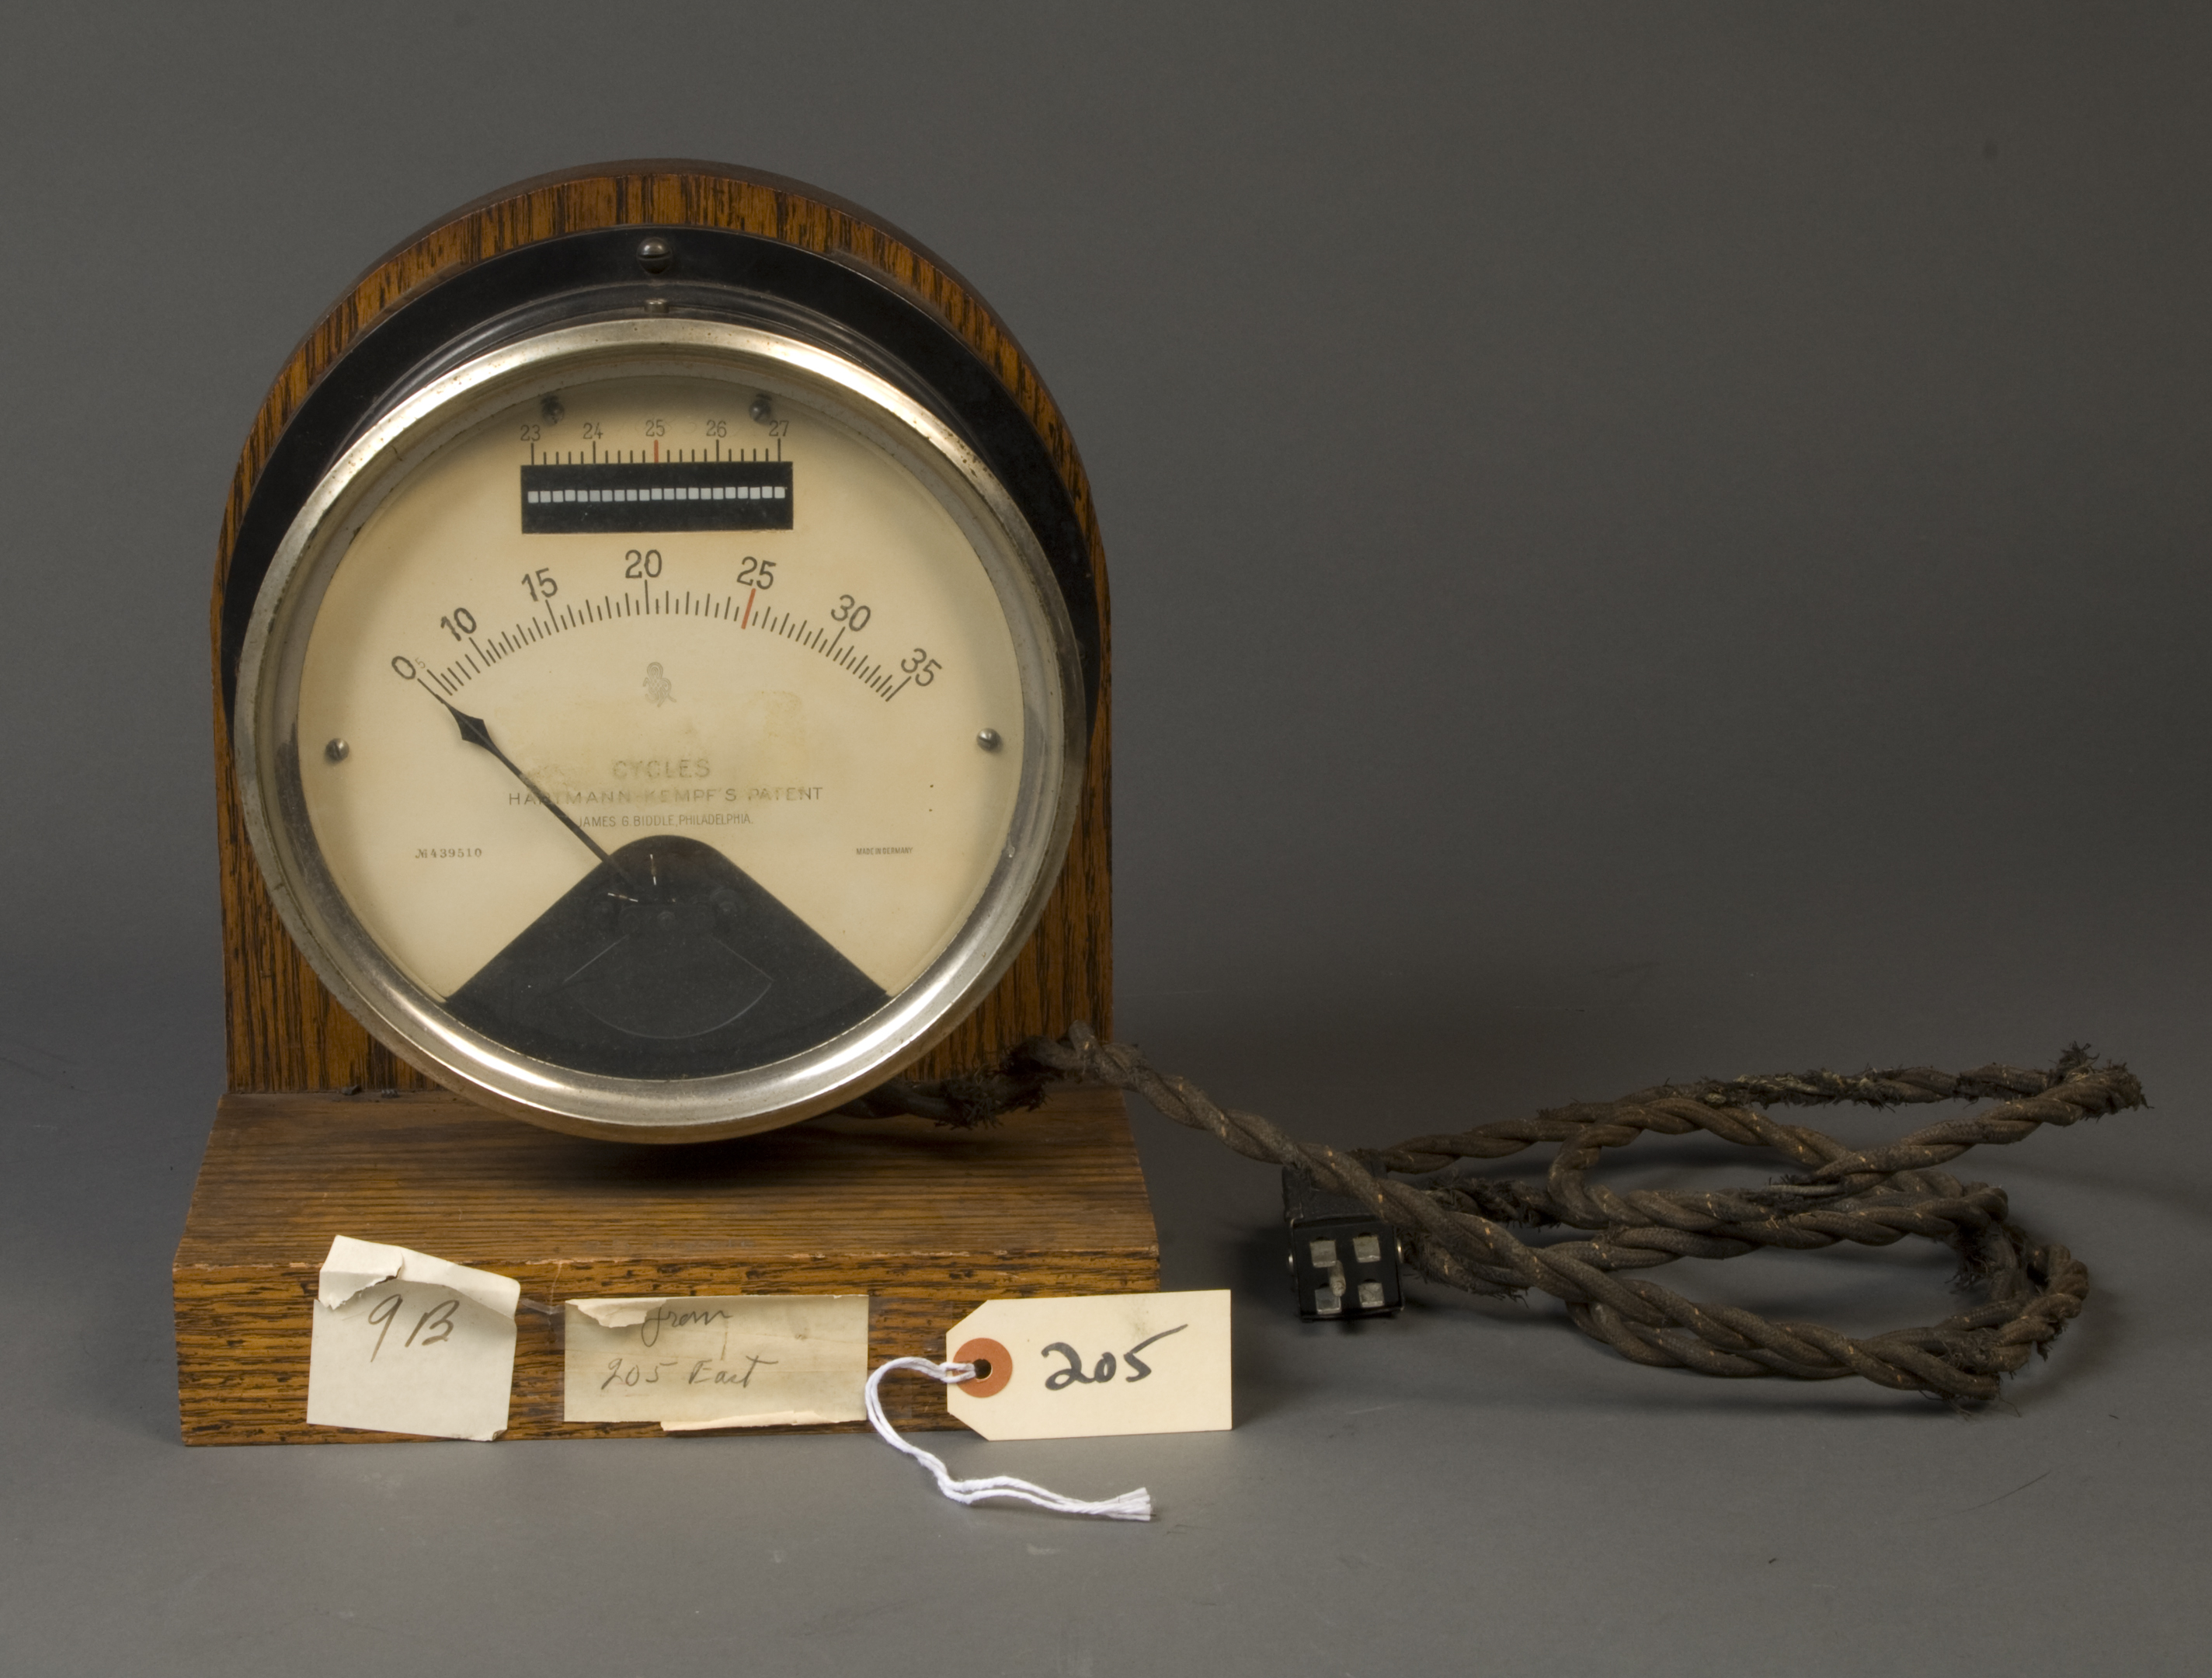 "A wood-framed circular face with a line gauge reading from 0 to 35 in 1/2 increments with a red line at 25. Another gauge above goes from 23 to 27, also with a red line at 25. Words read ""cycles,"" Hartmann-Kempf's Patent"" and James G. Biddle Philadelphia."